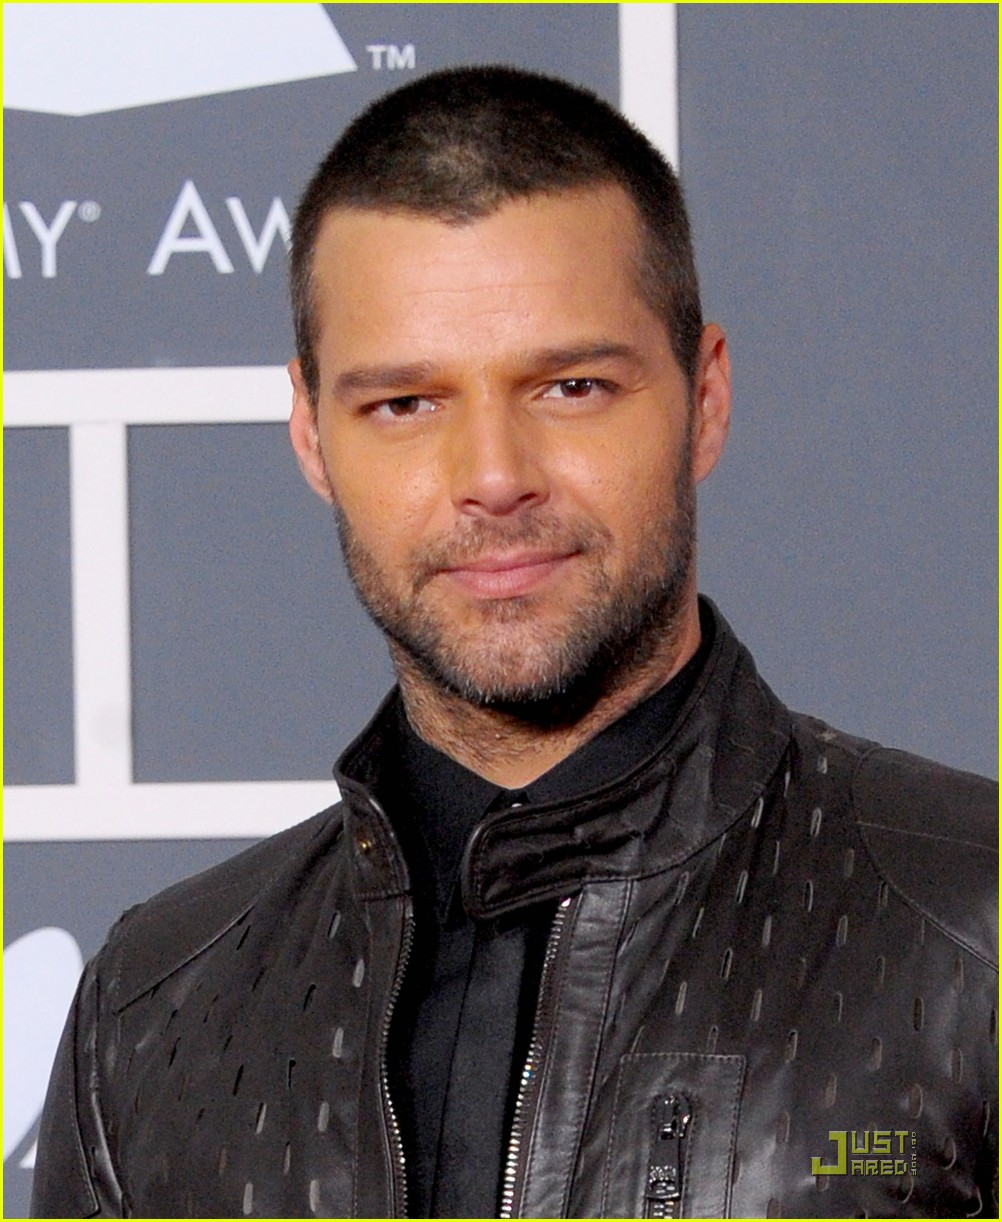 http://www.latintrends.com/wp-content/uploads/2010/08/ricky-martin.jpg